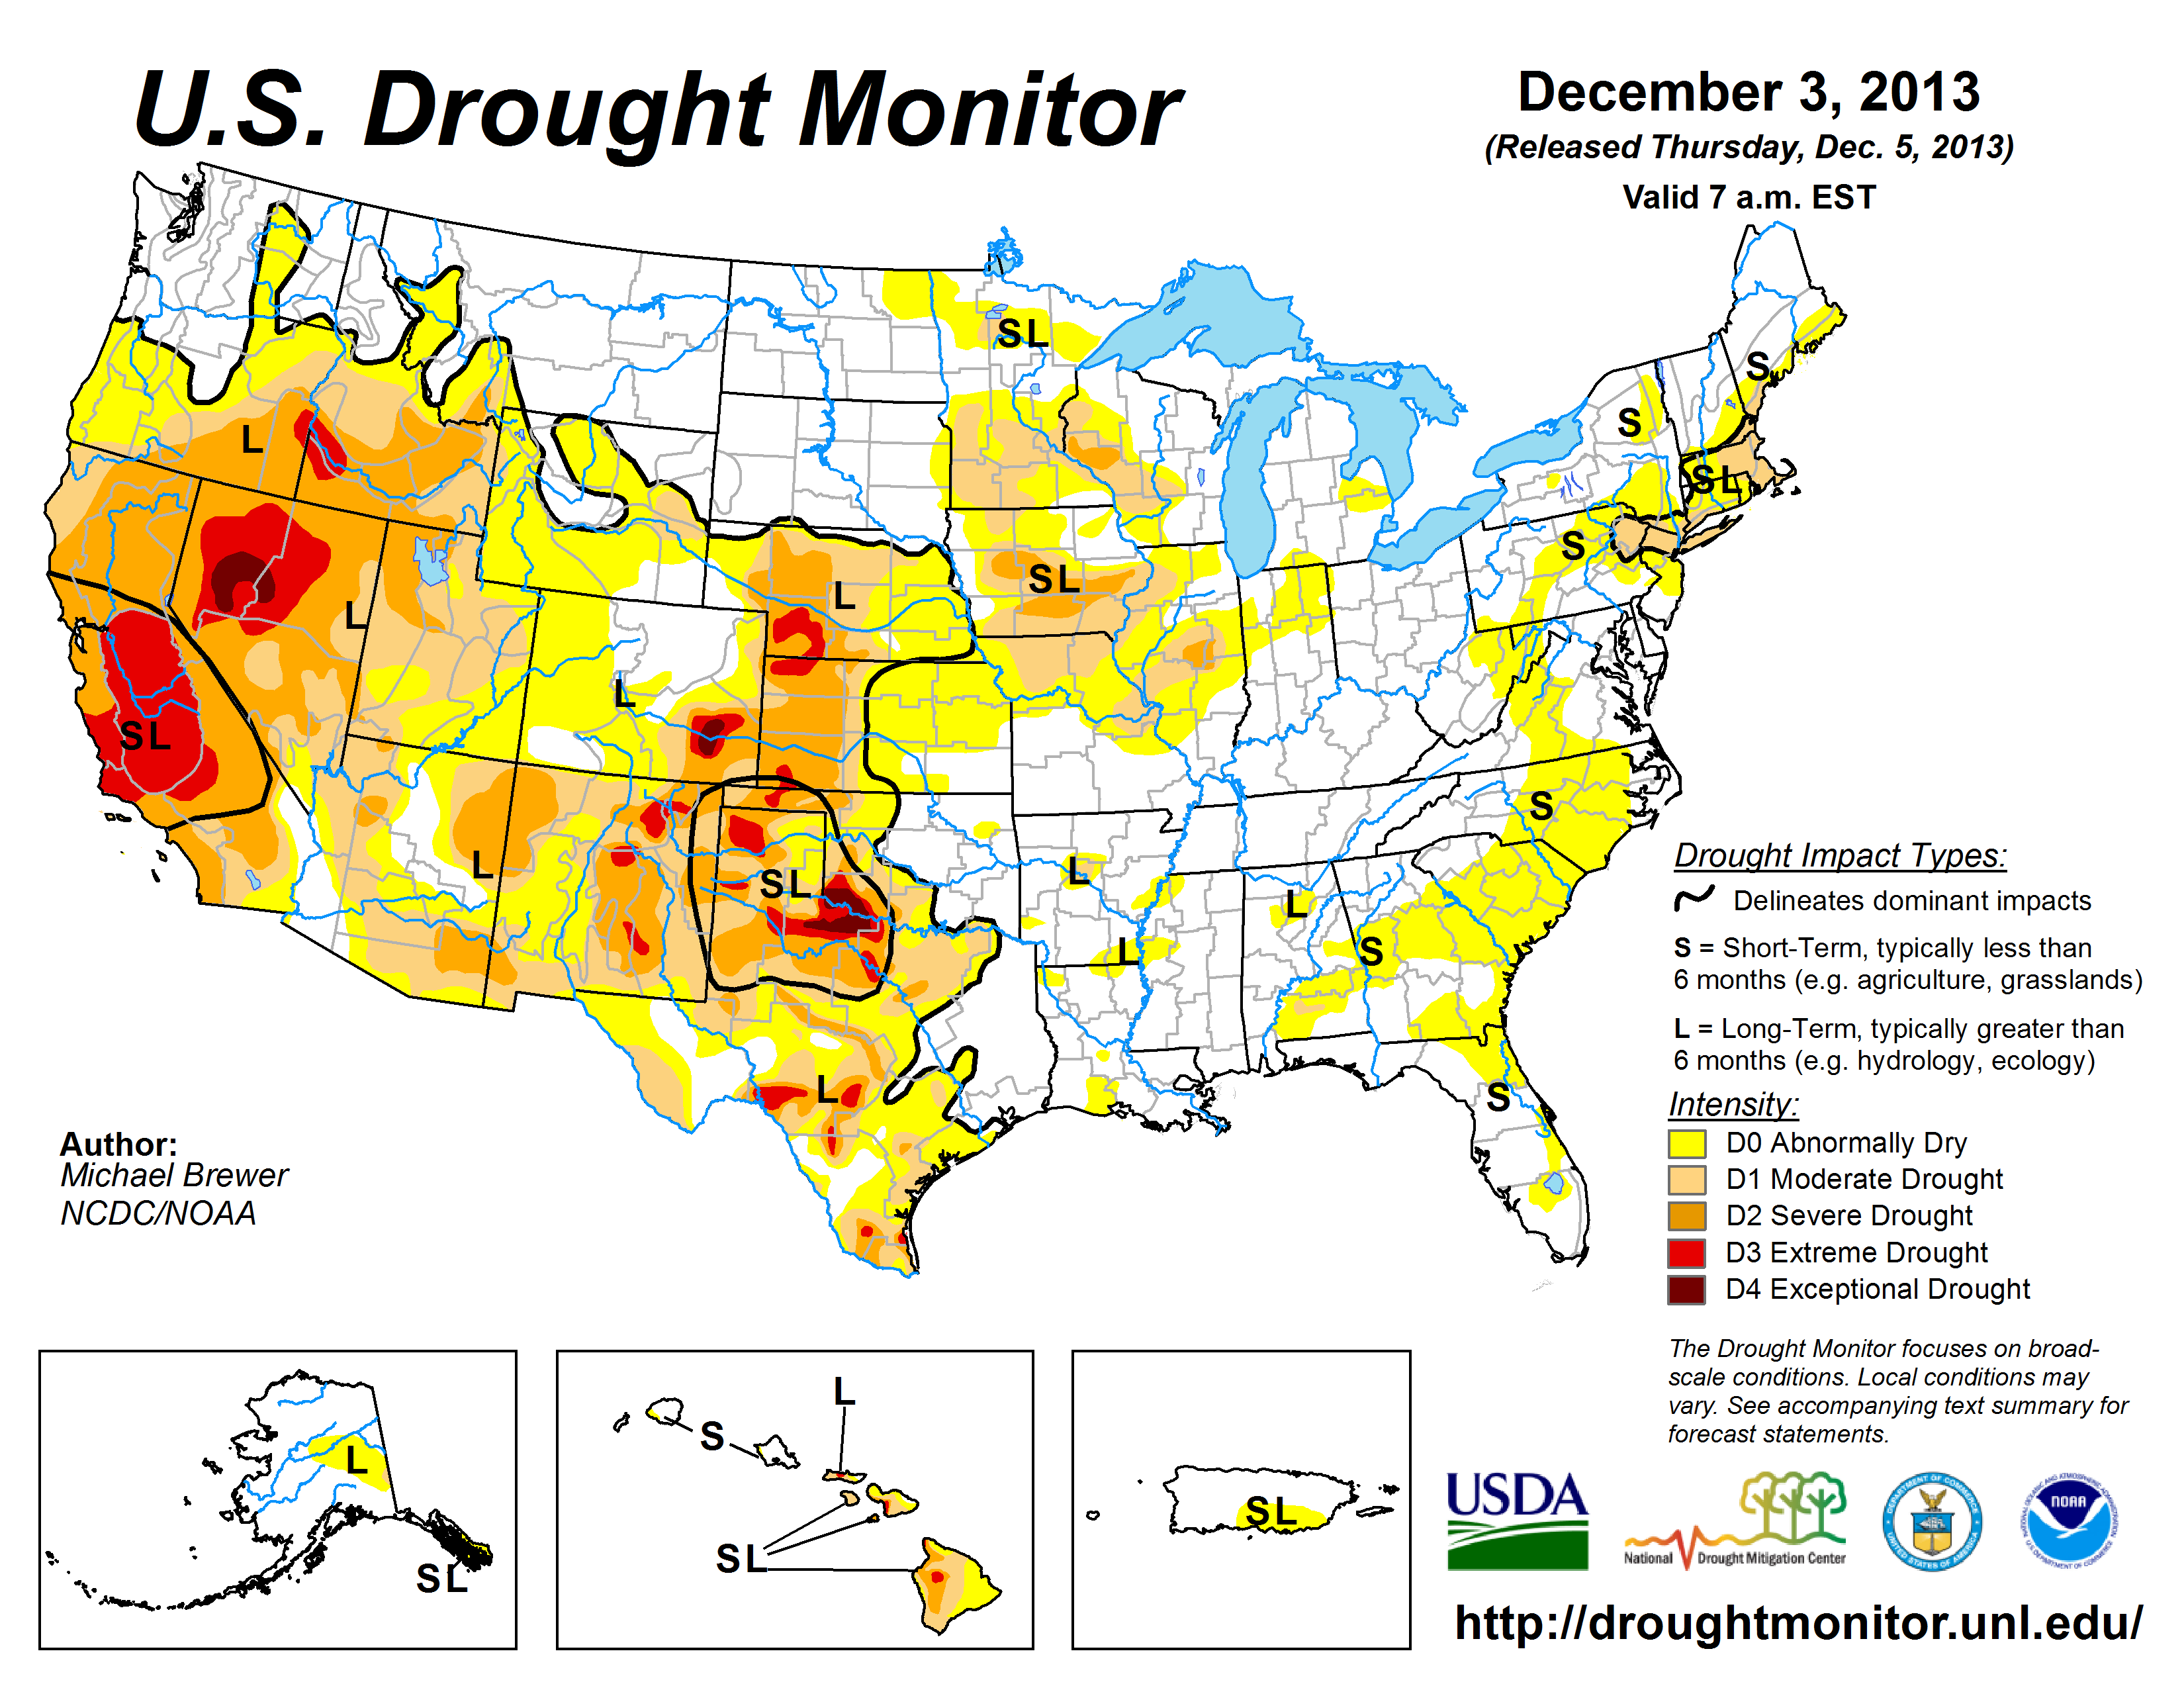 The U.S. Drought Monitor drought map valid December 3, 2013